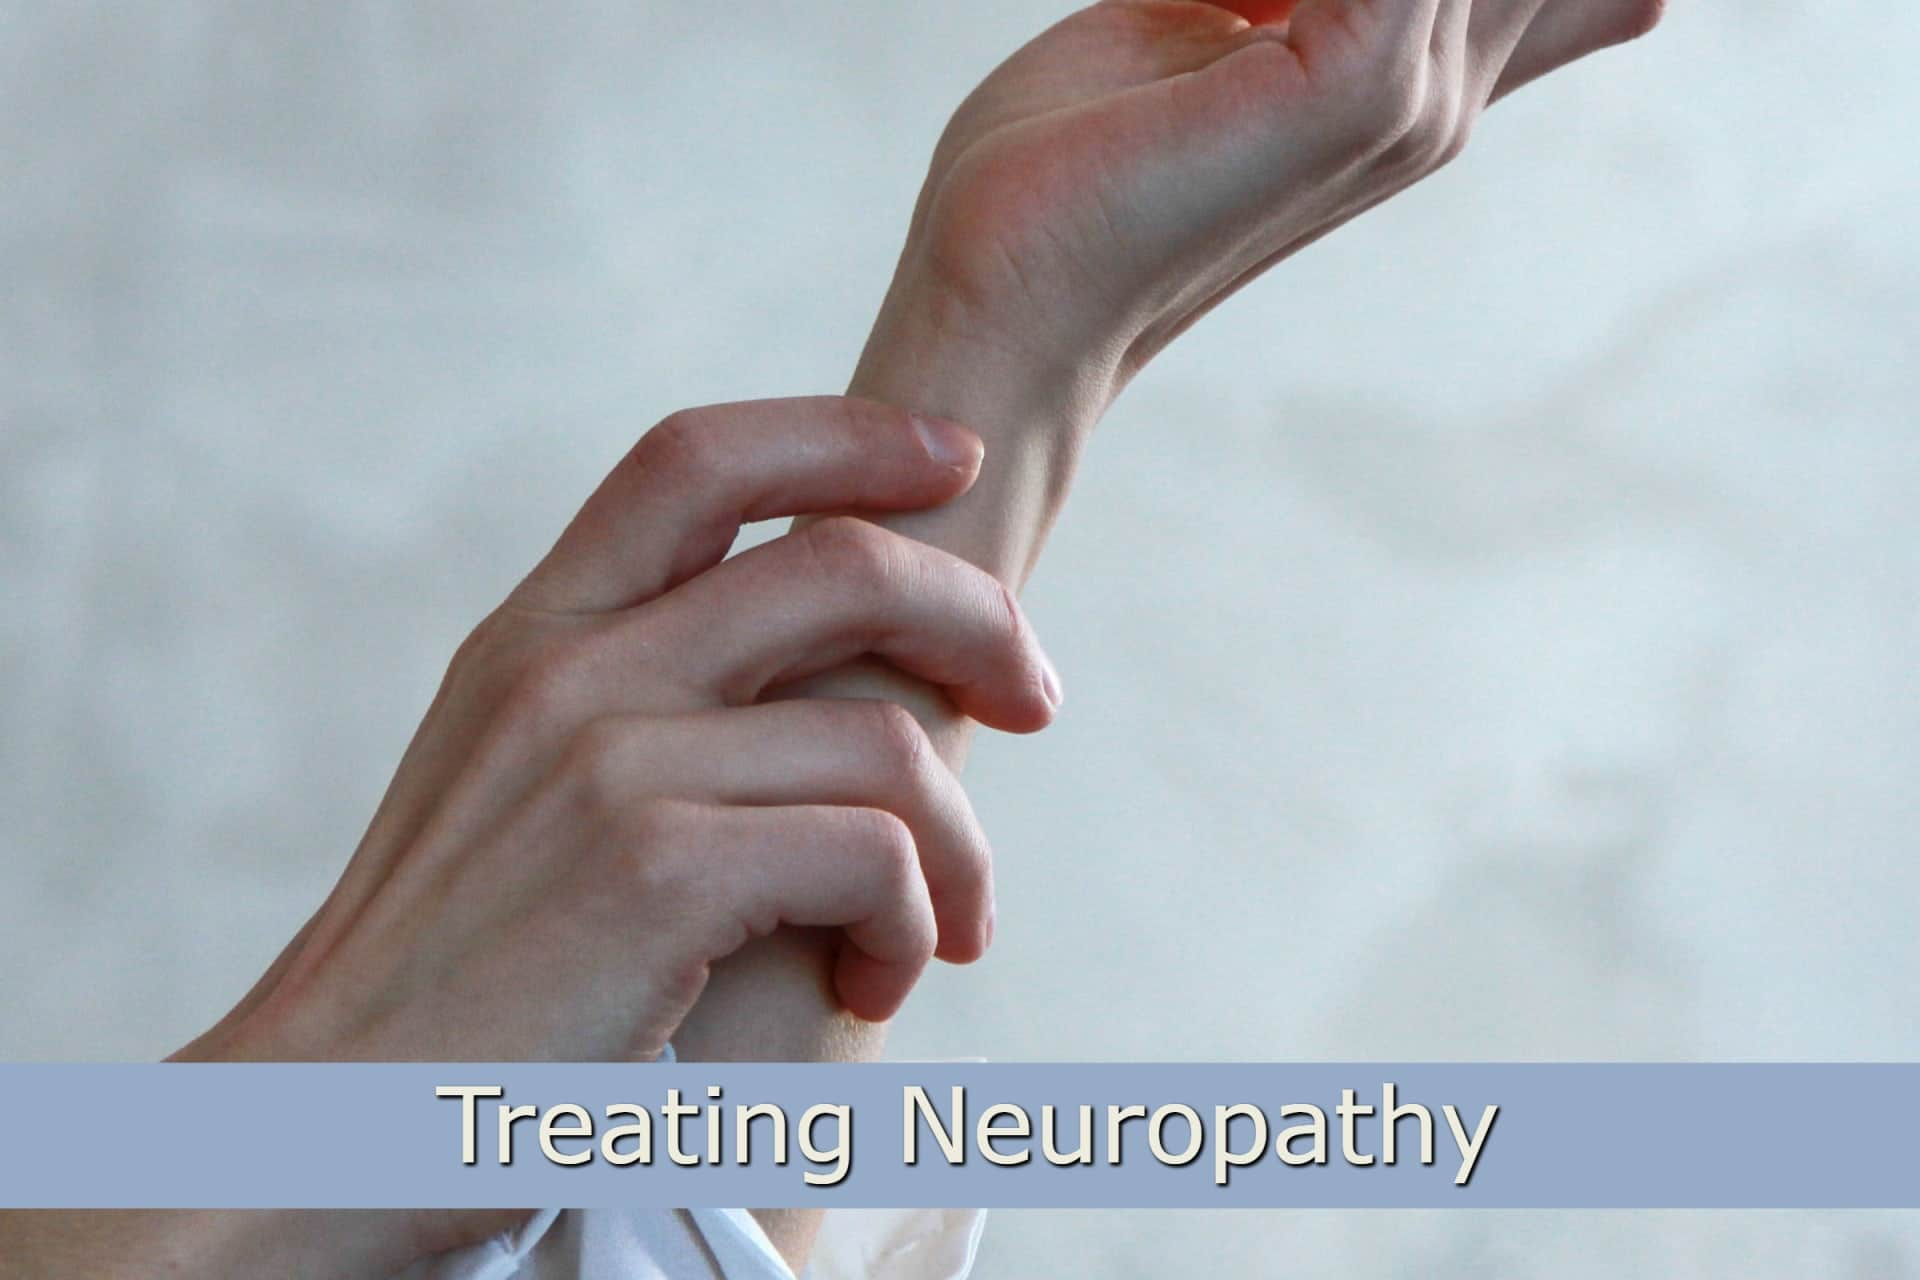 Can a Chiropractor Help with Neuropathy?